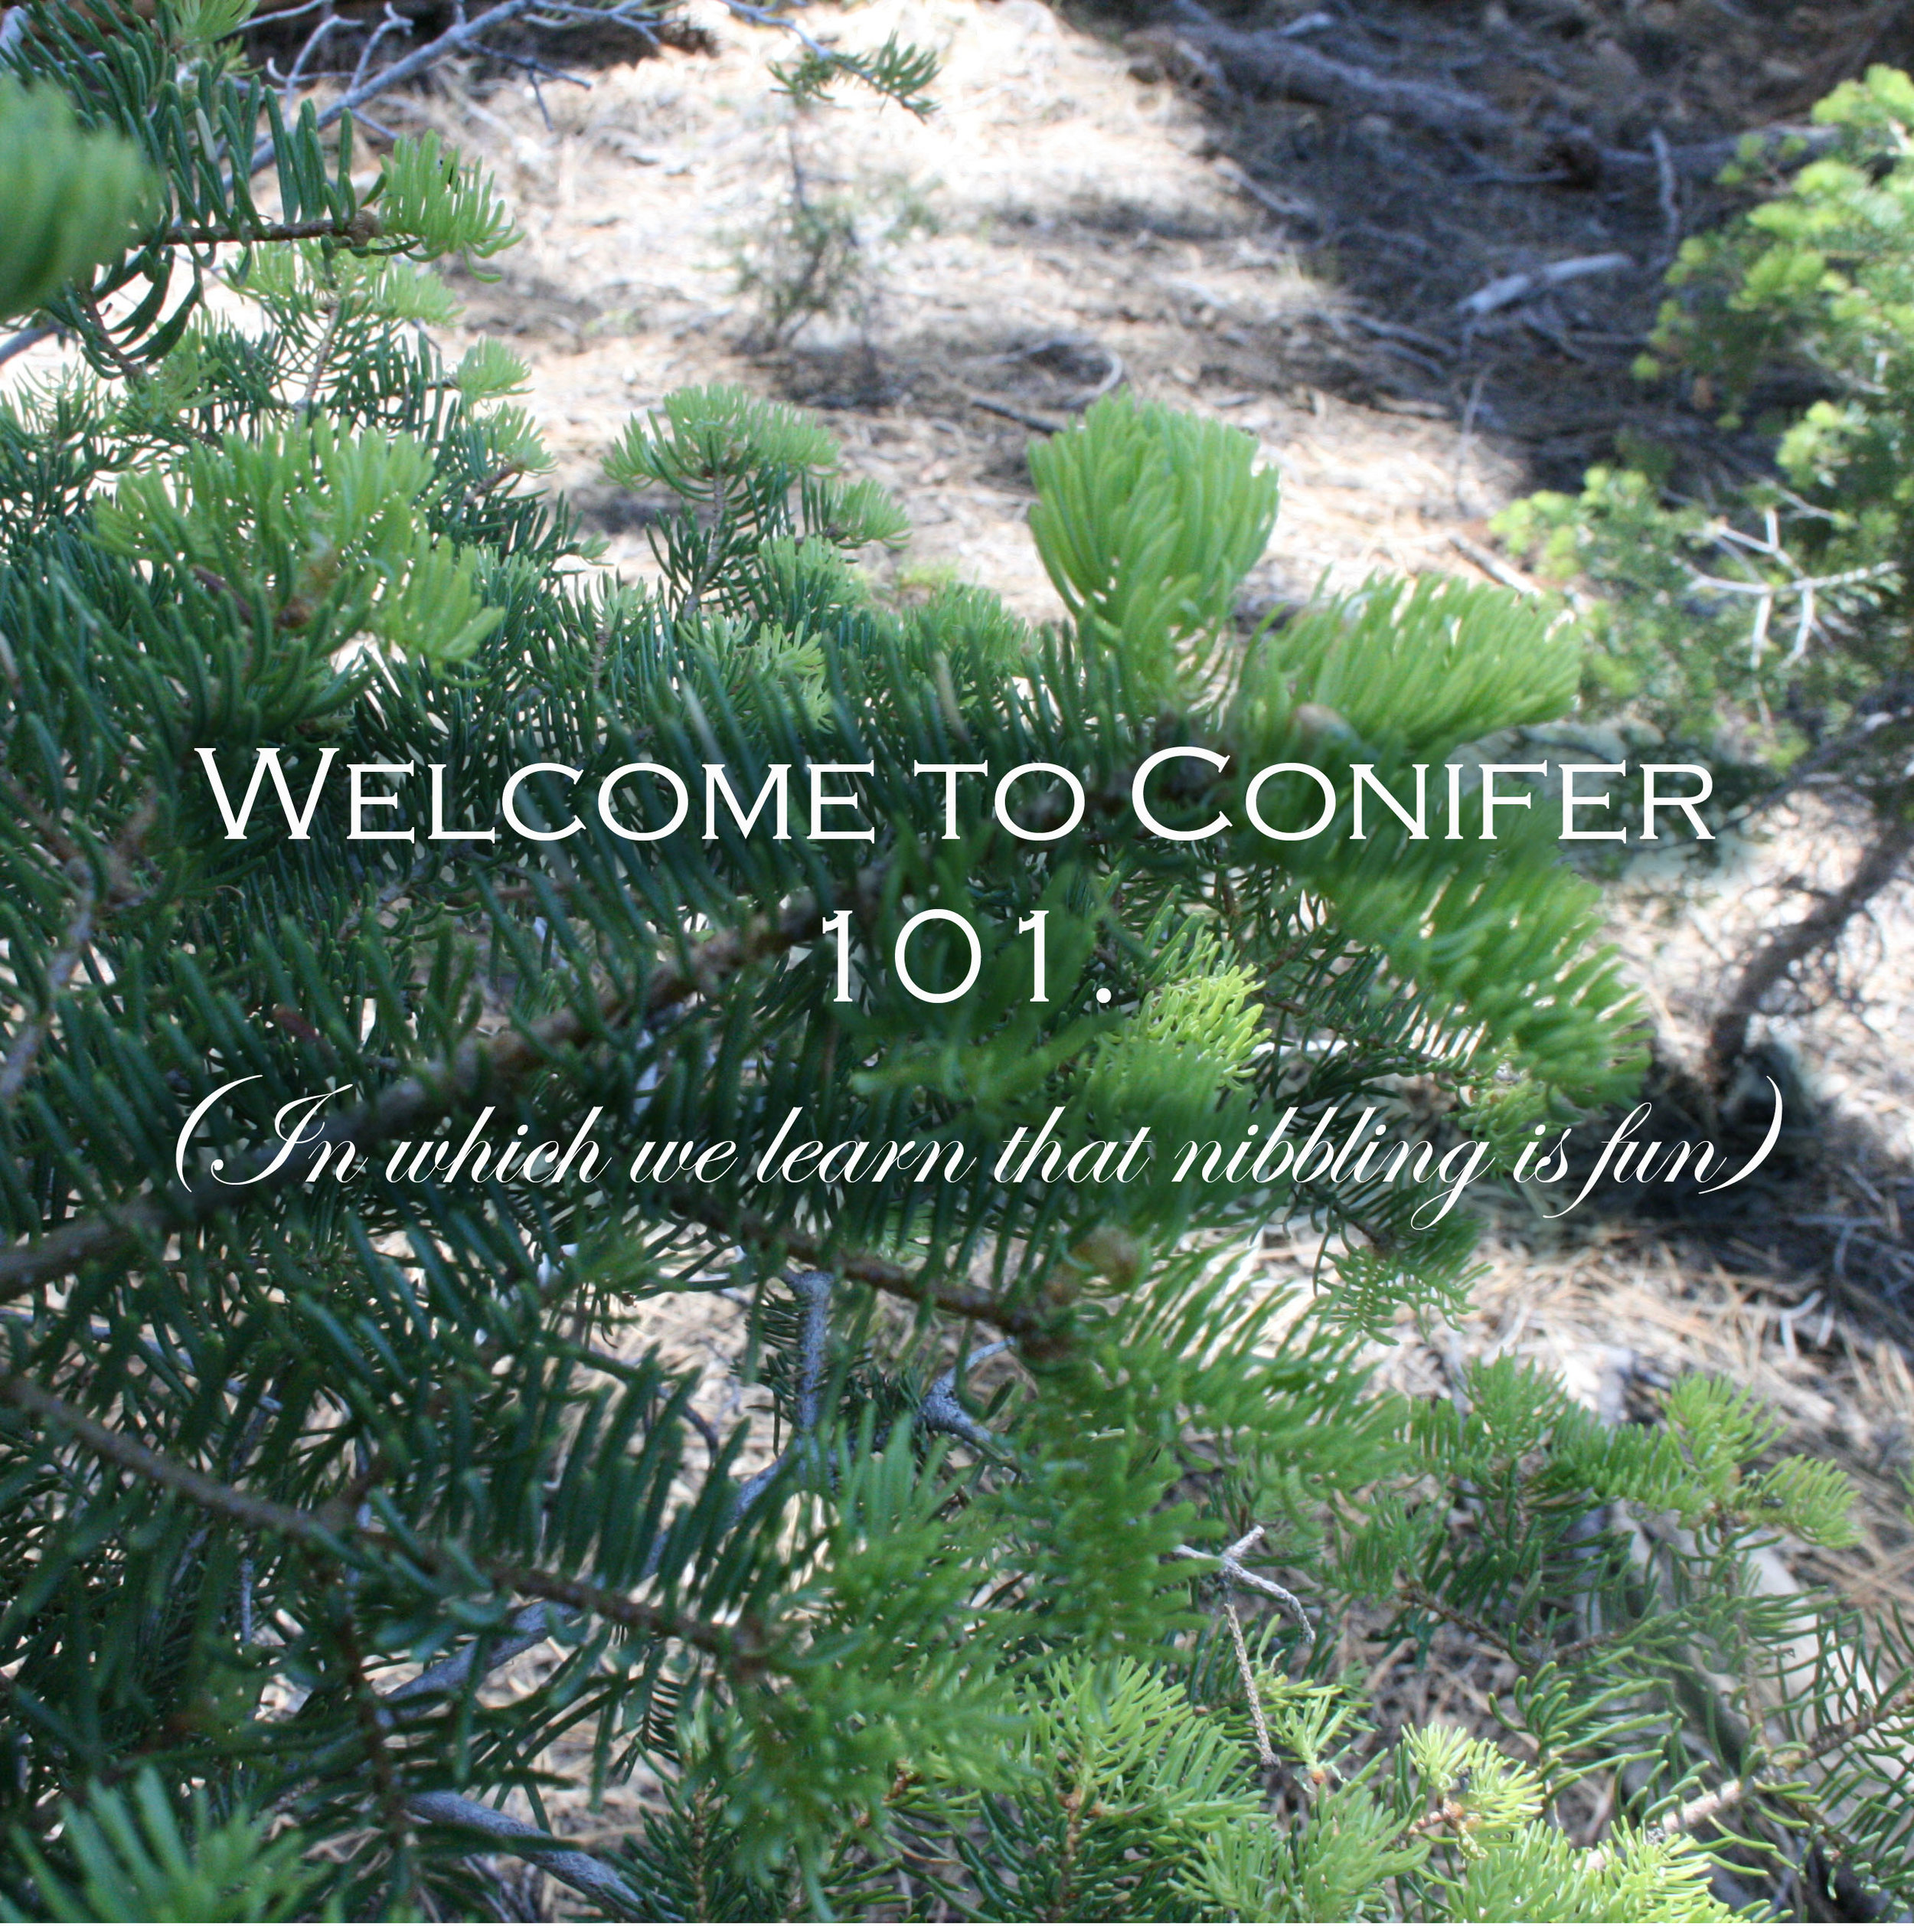 WELCOME-TO-CONIFER-101.jpg